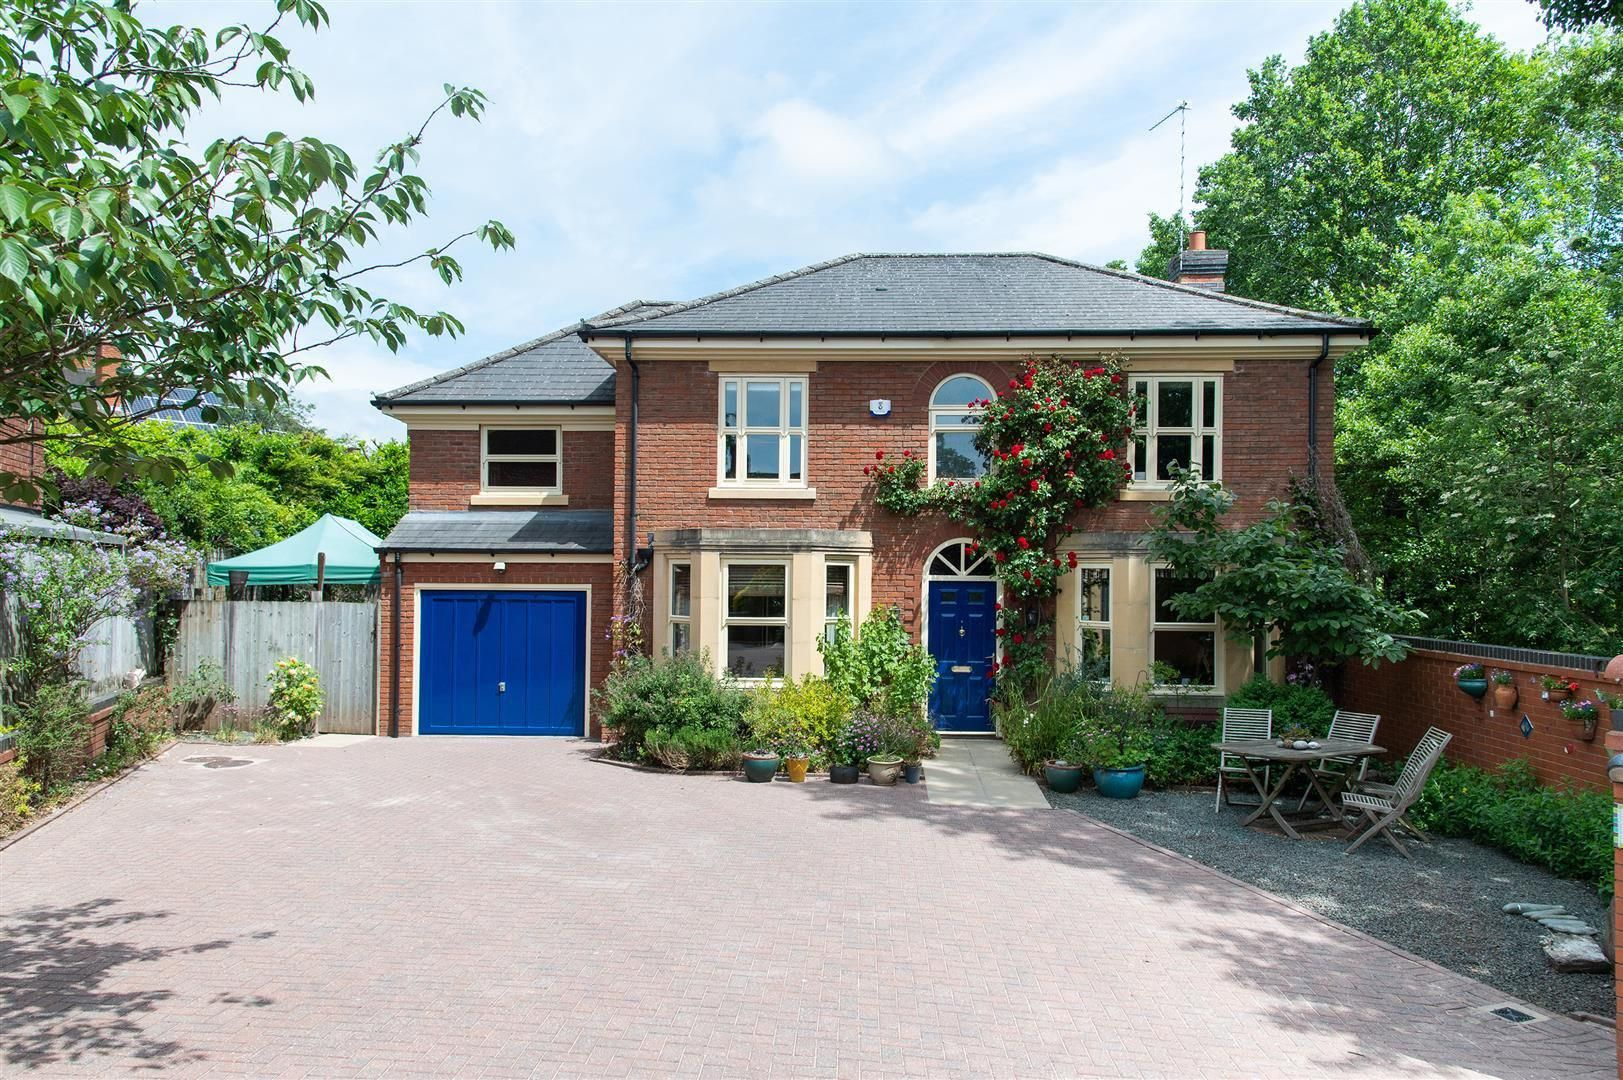 5 bed house for sale in Hagley 38